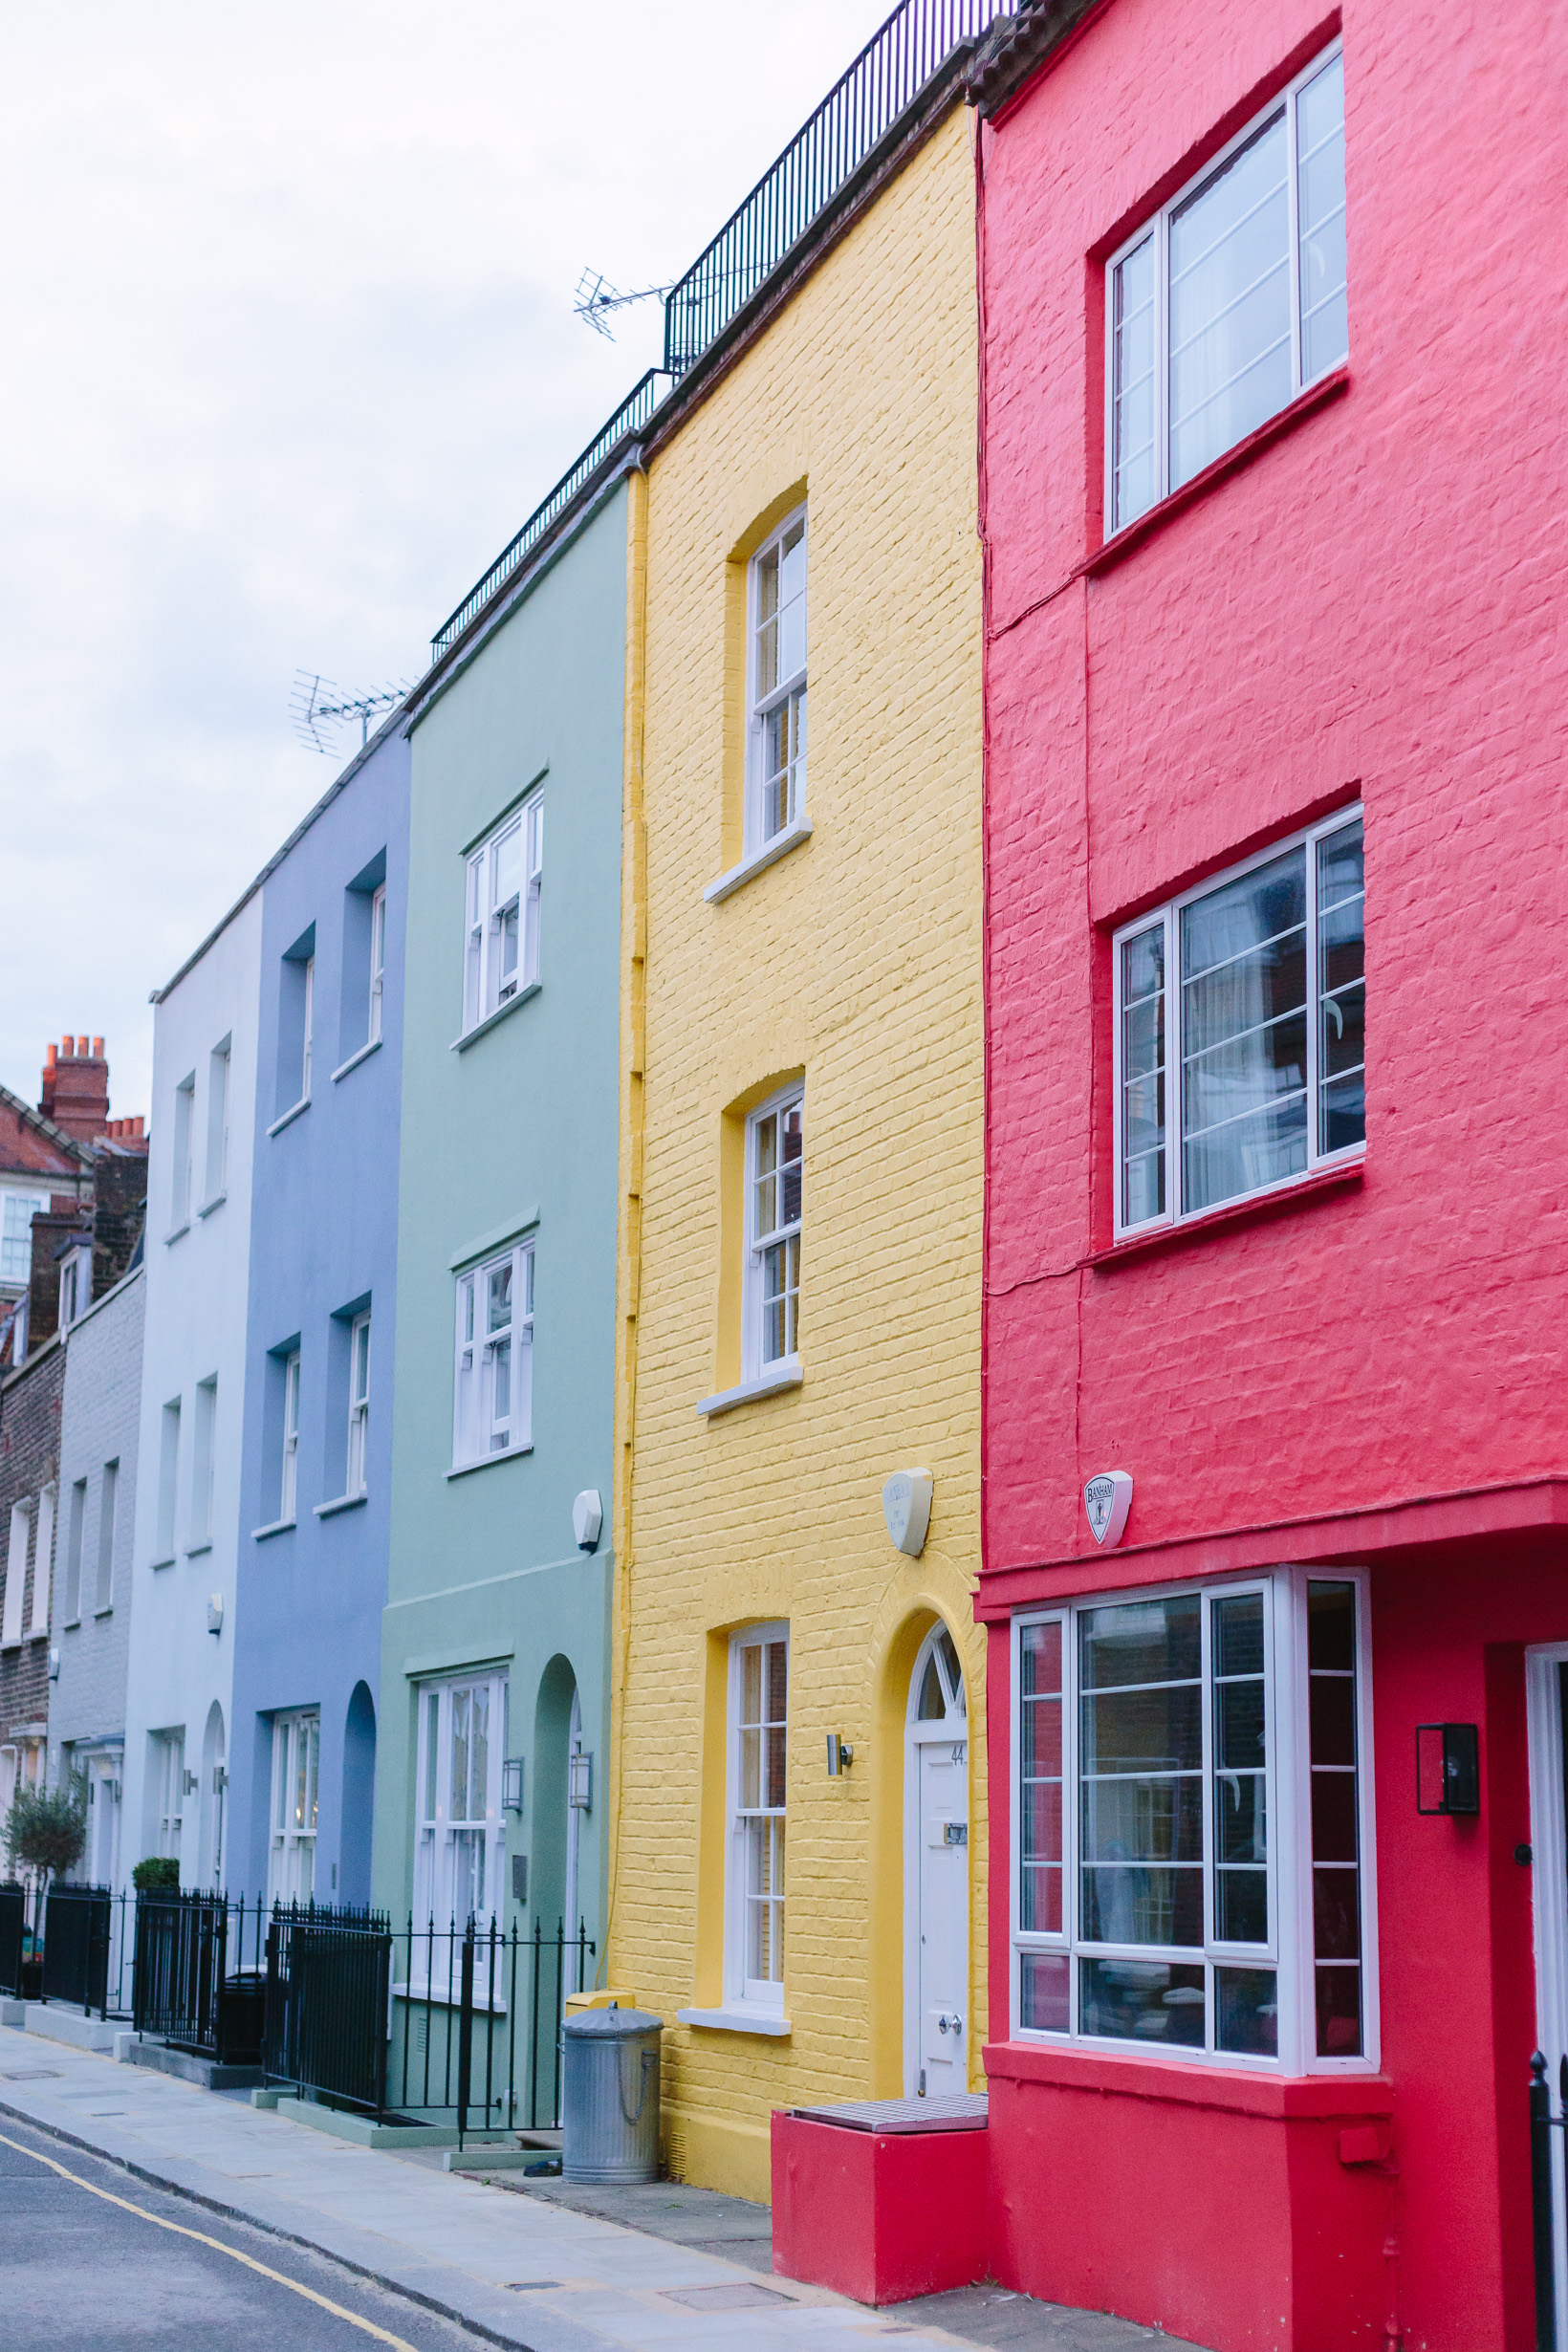 colorful-houses-in-london-3933